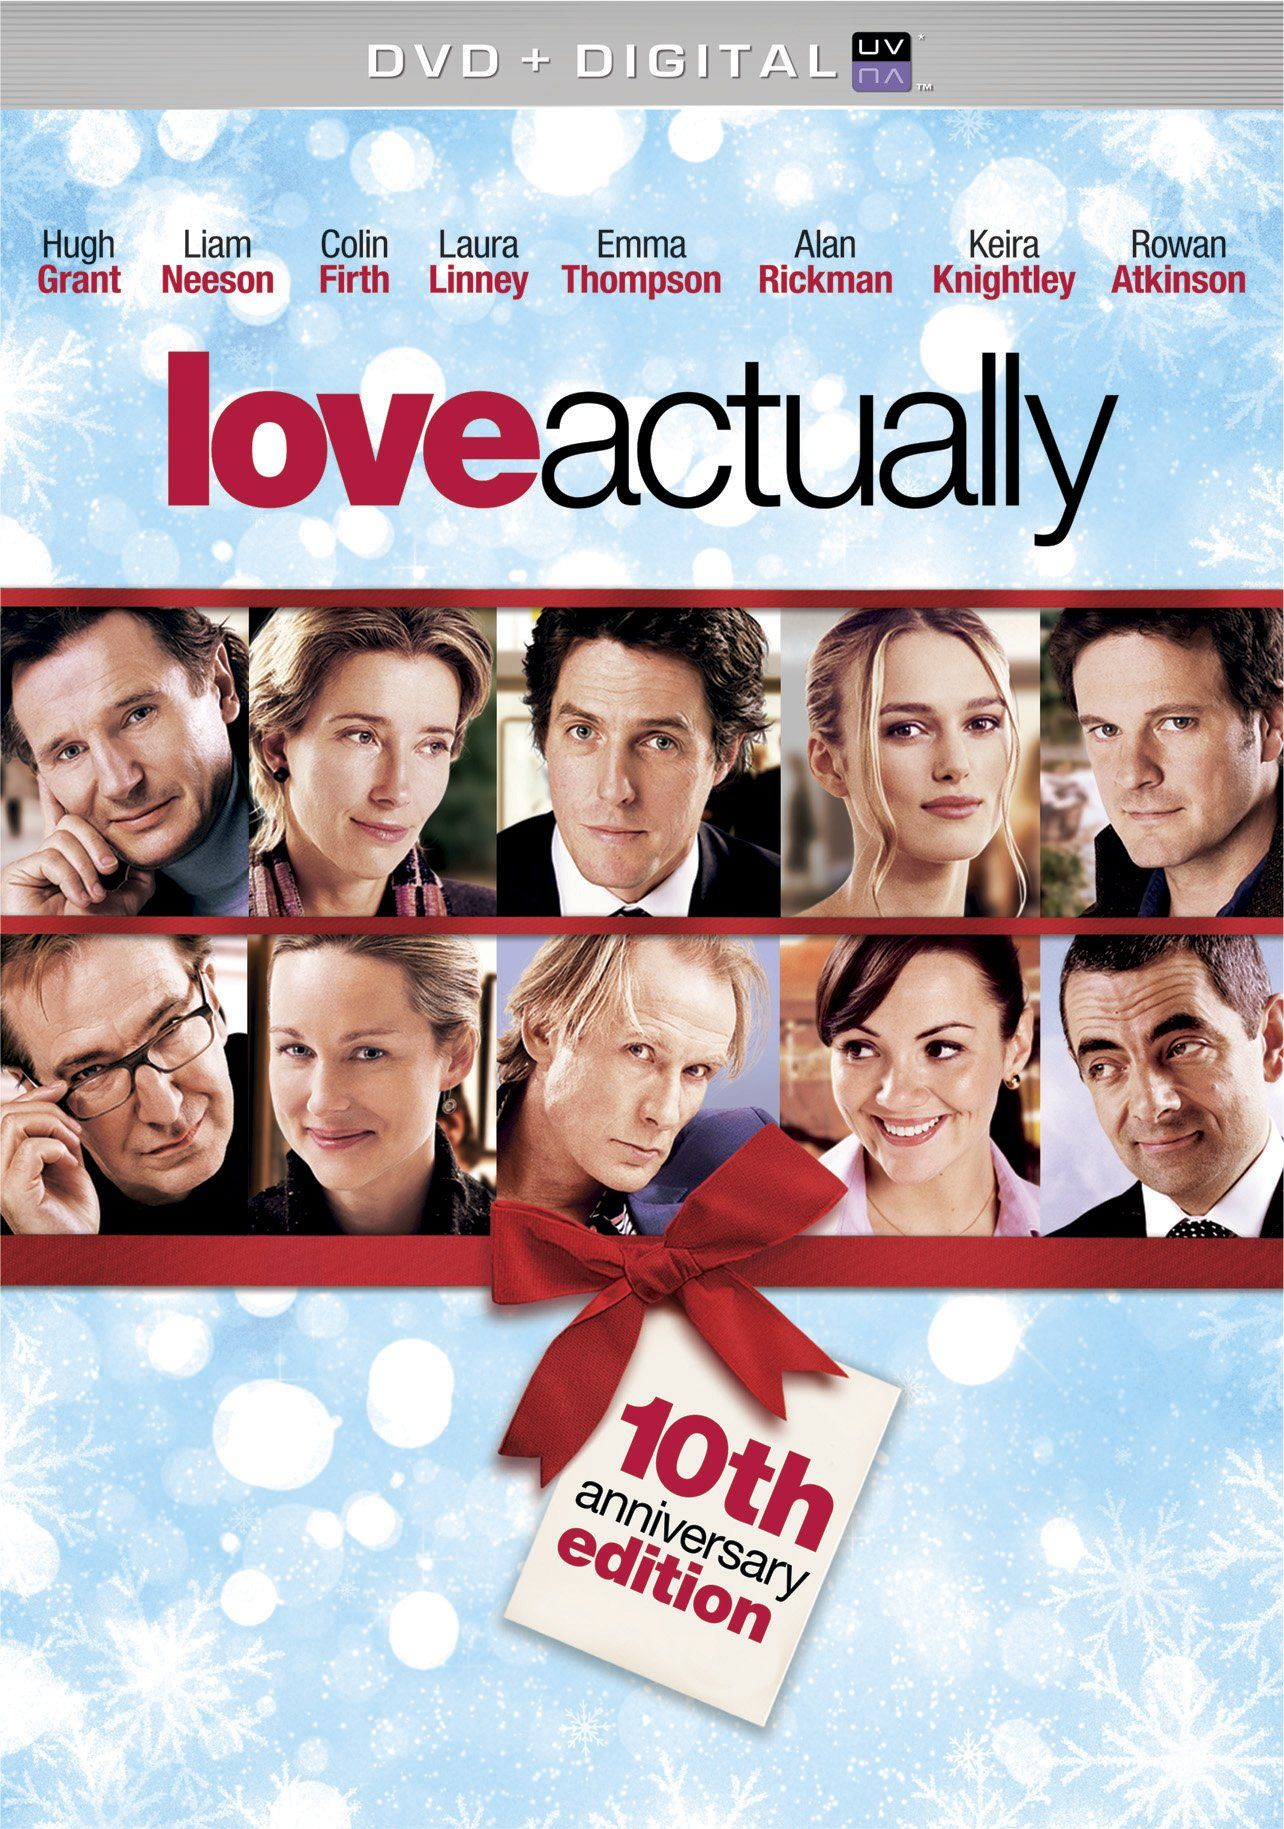 Romantic Comedy Movies Challenge: Week 1 | Comedy movies list ...